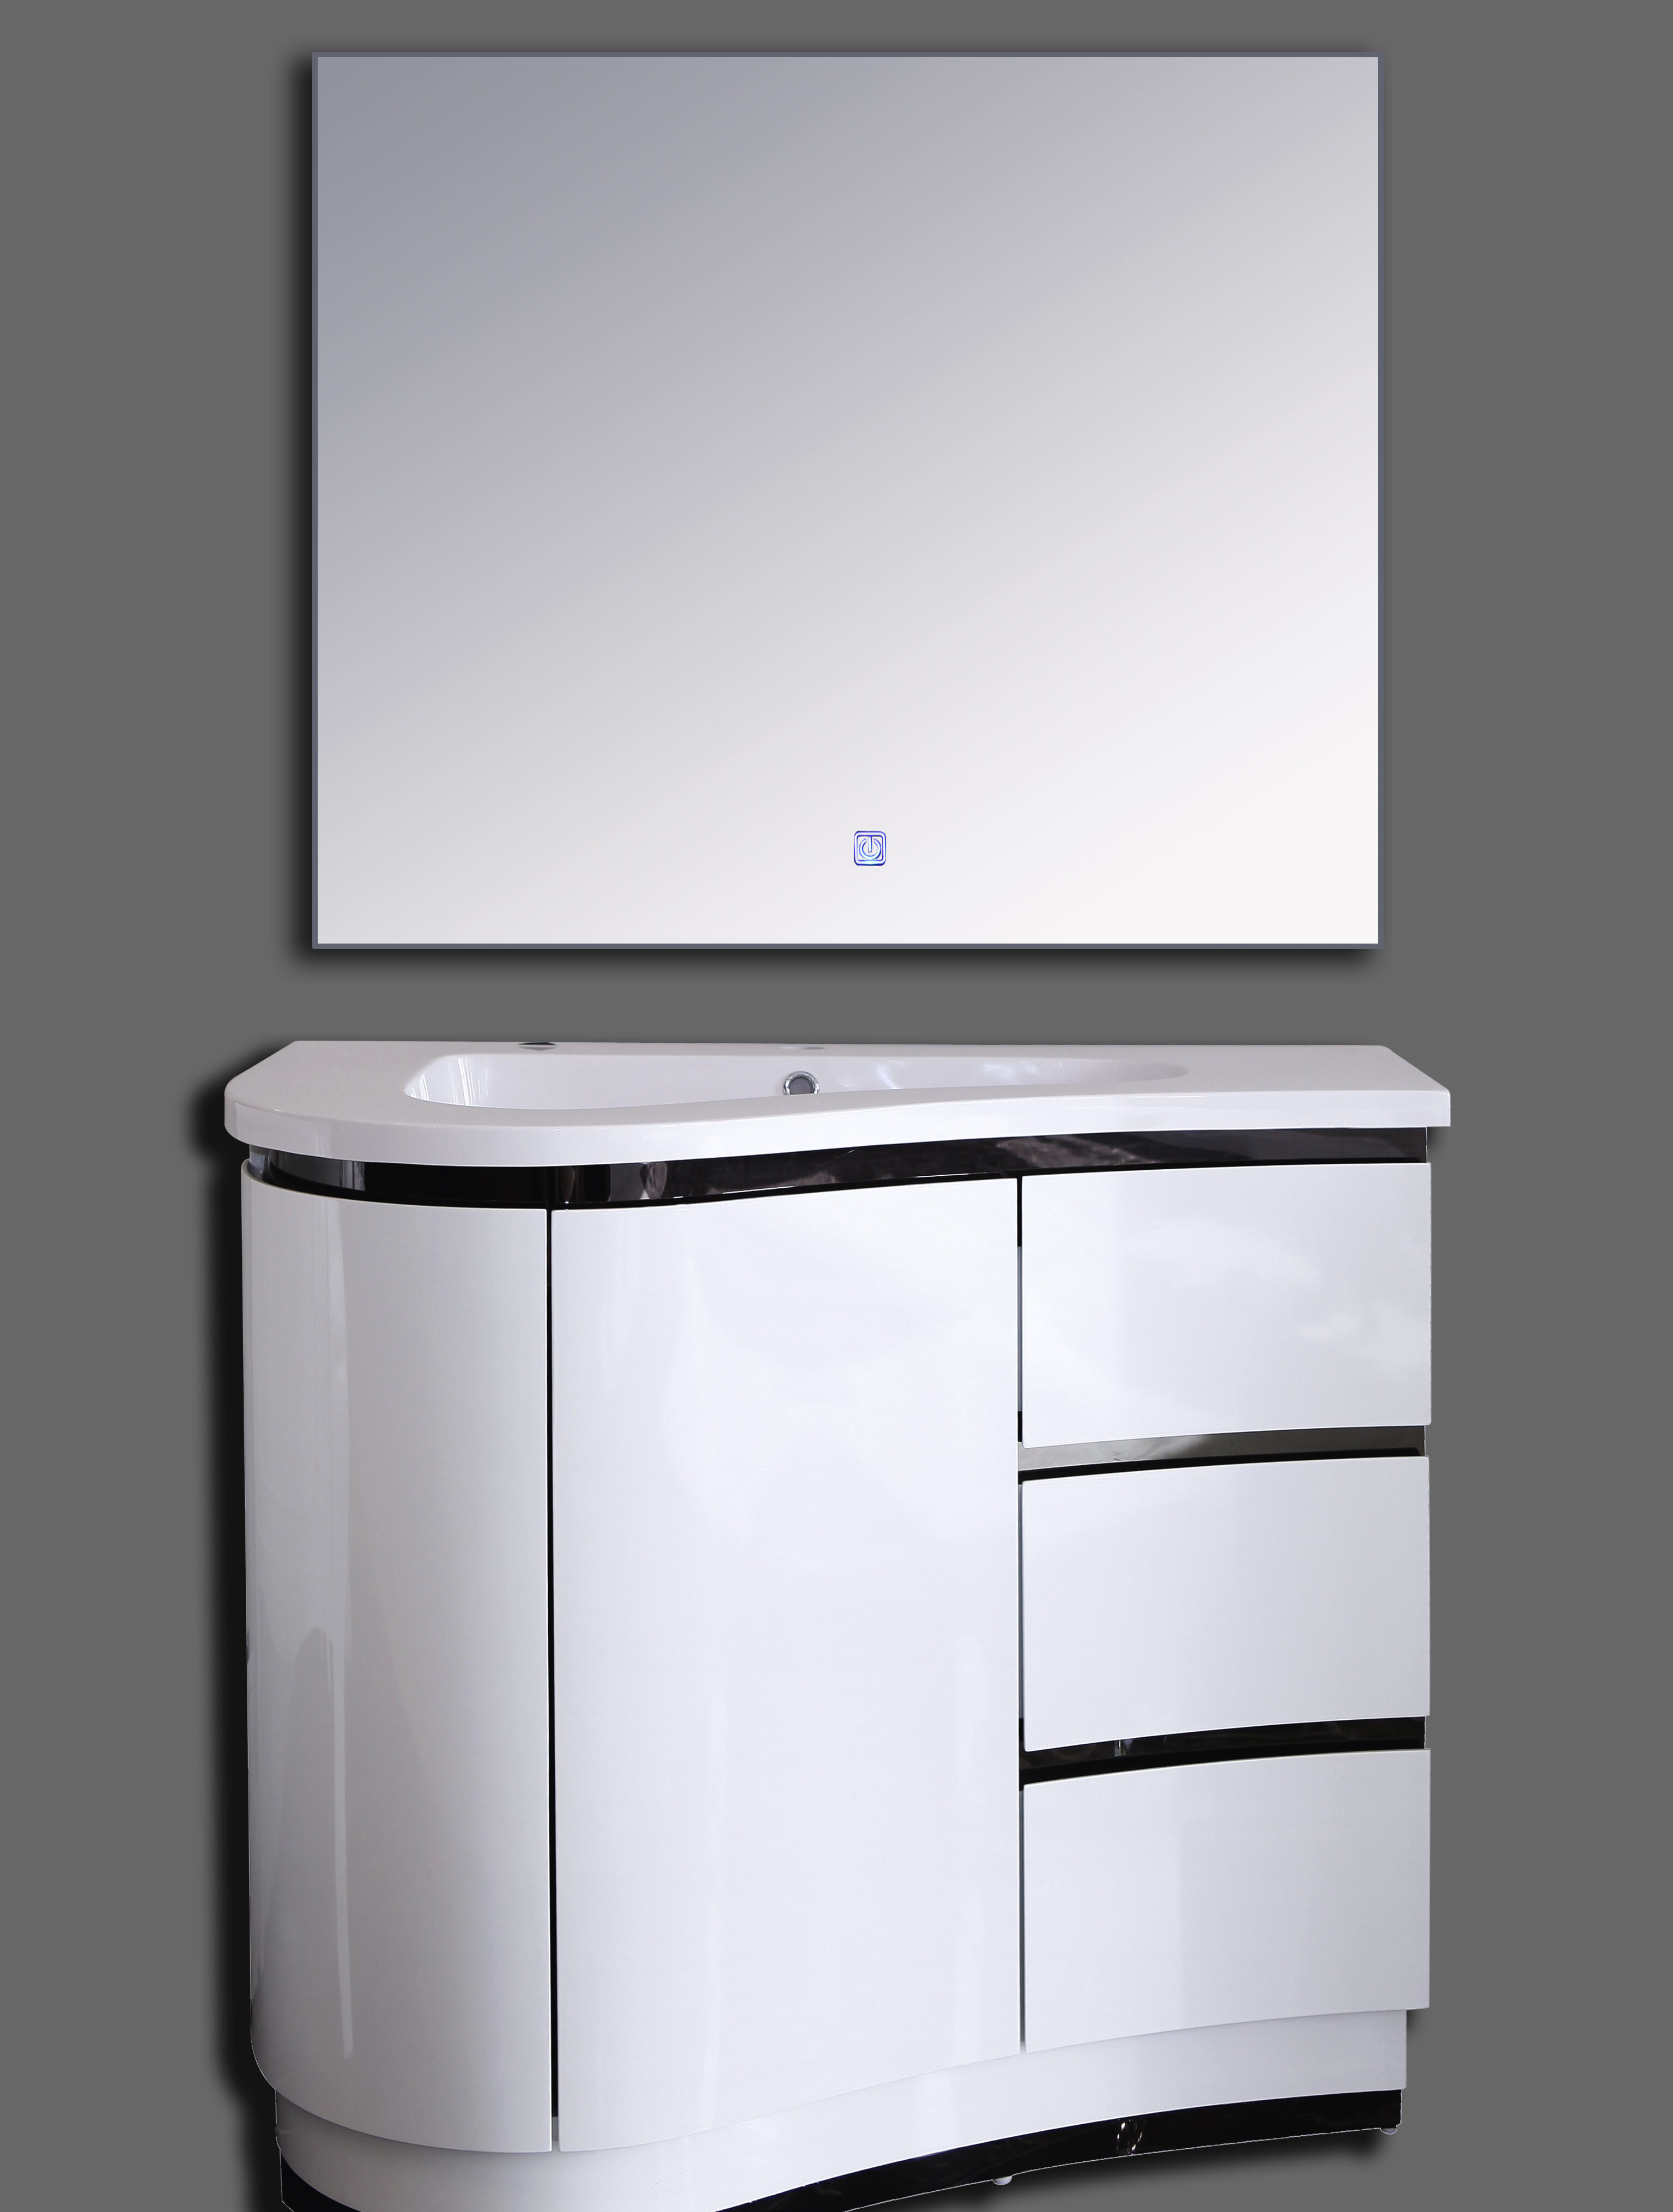 Bauxite Lacquered High Gloss 32